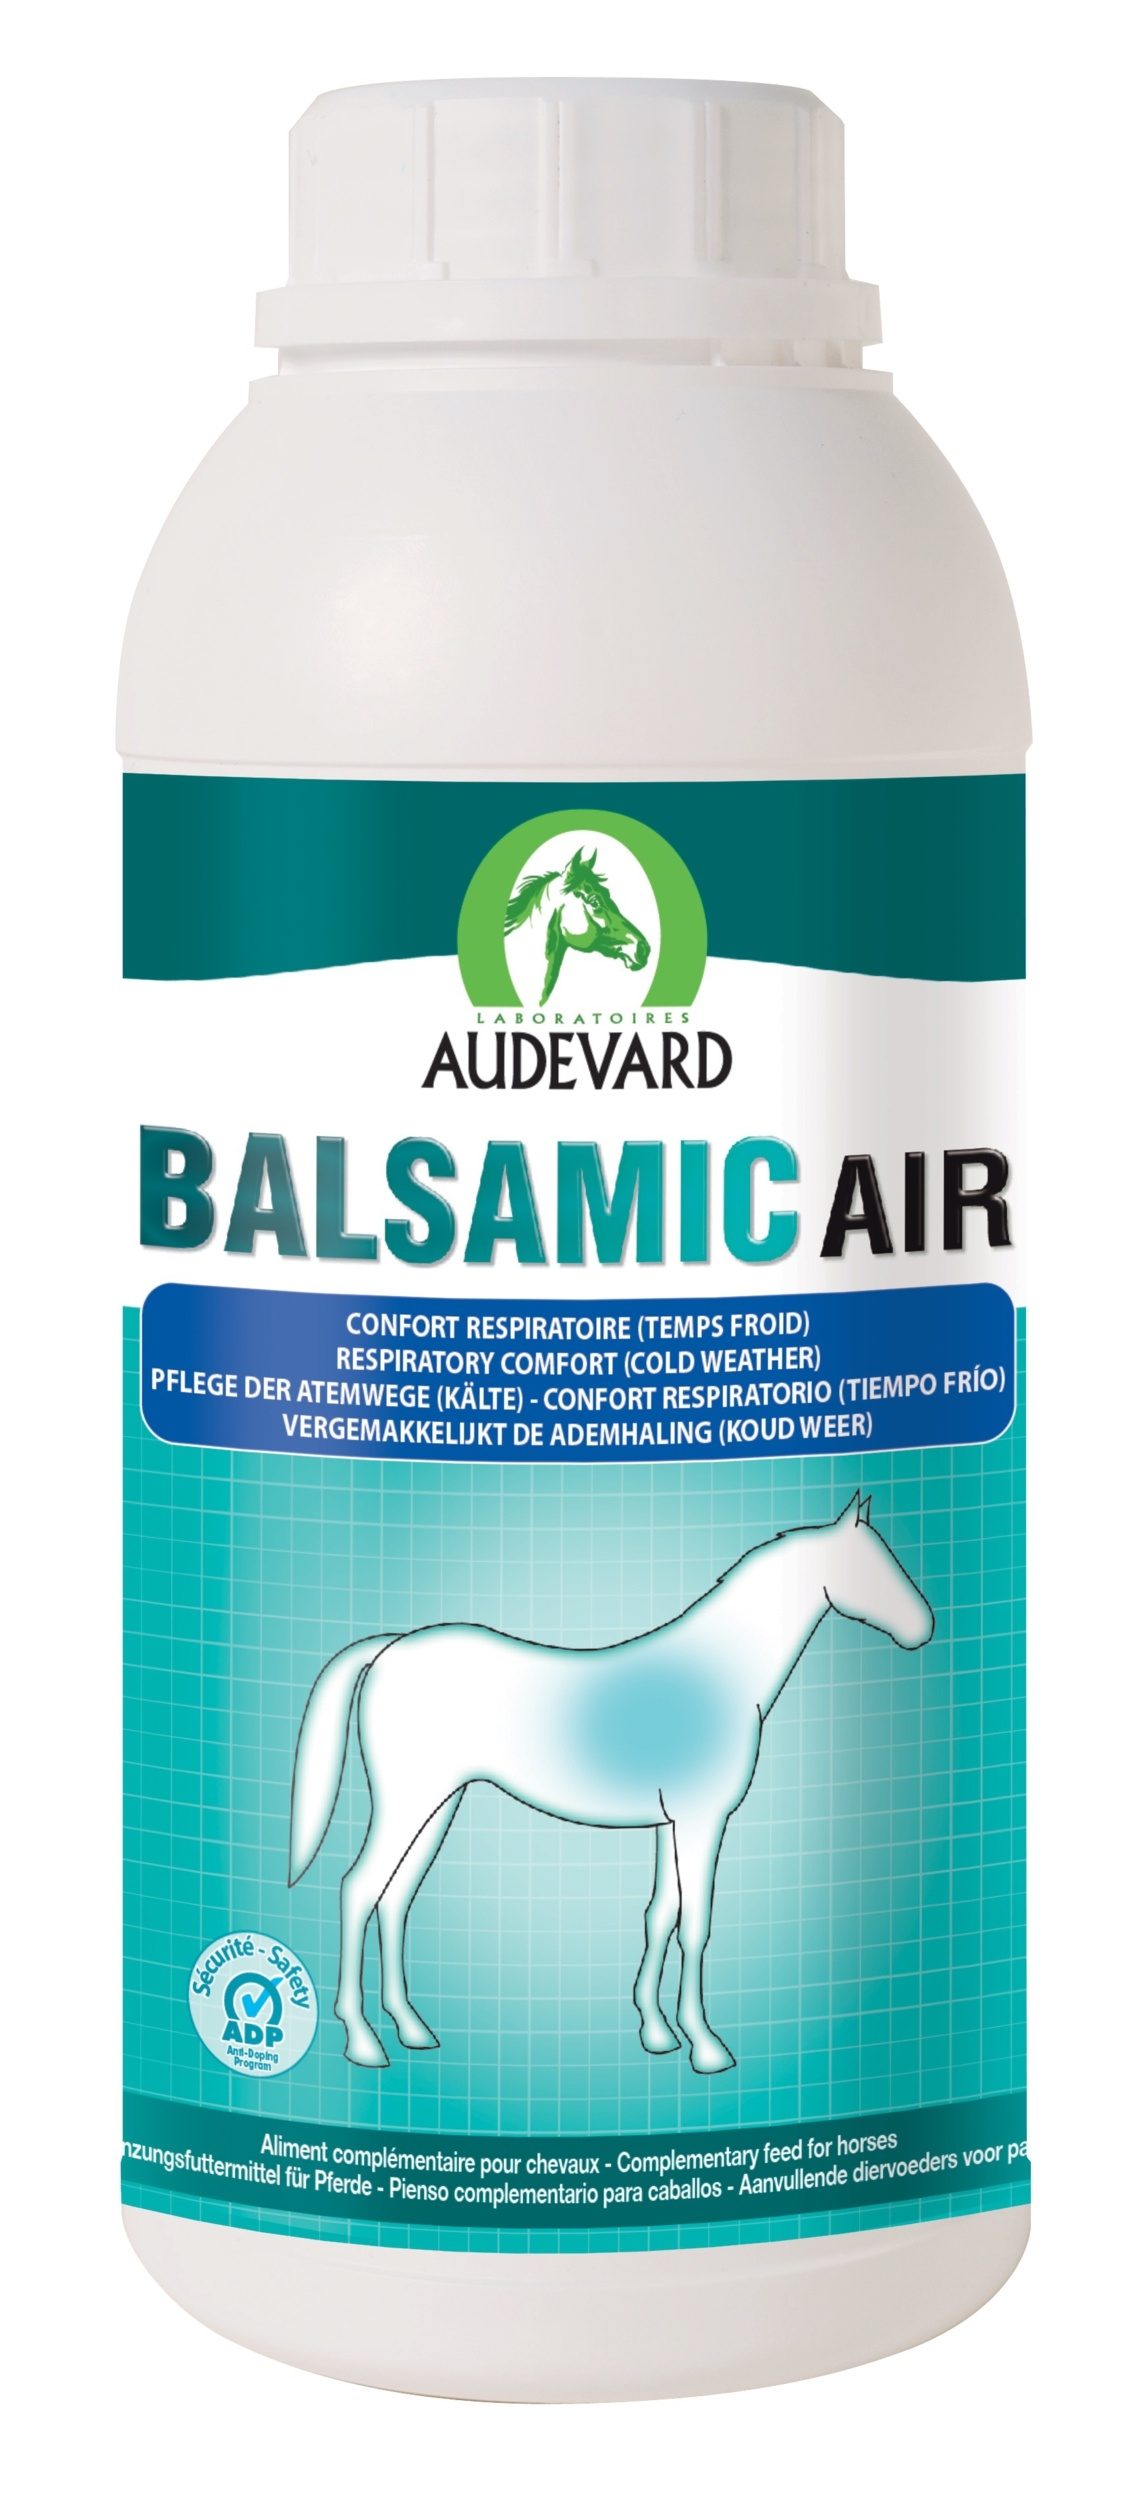 BALSAMIC AIR pour la respiration du cheval